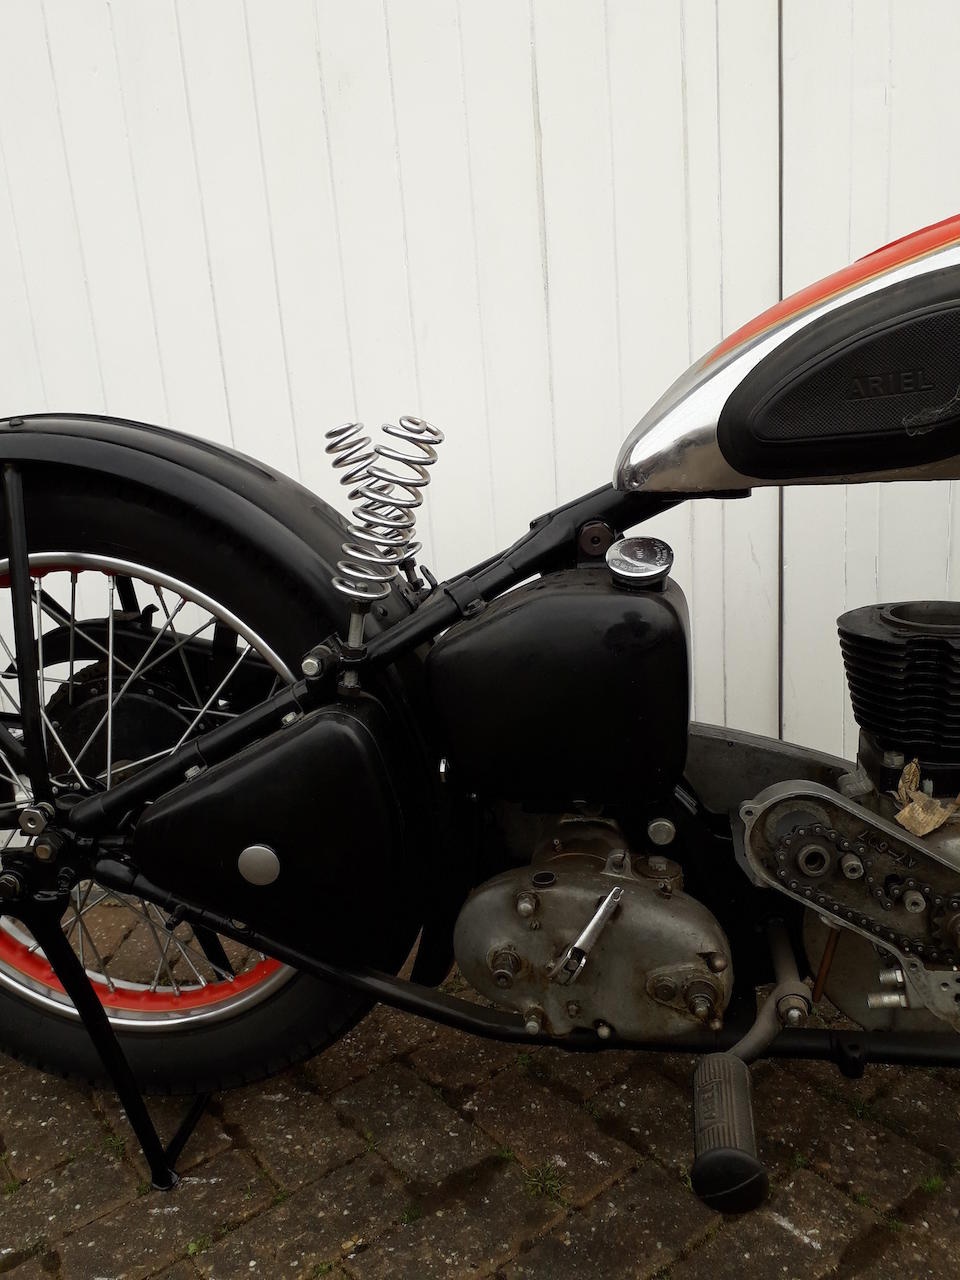 1938 Ariel 497cc Red Hunter Project Frame no. XG 5539 Engine no. None visible